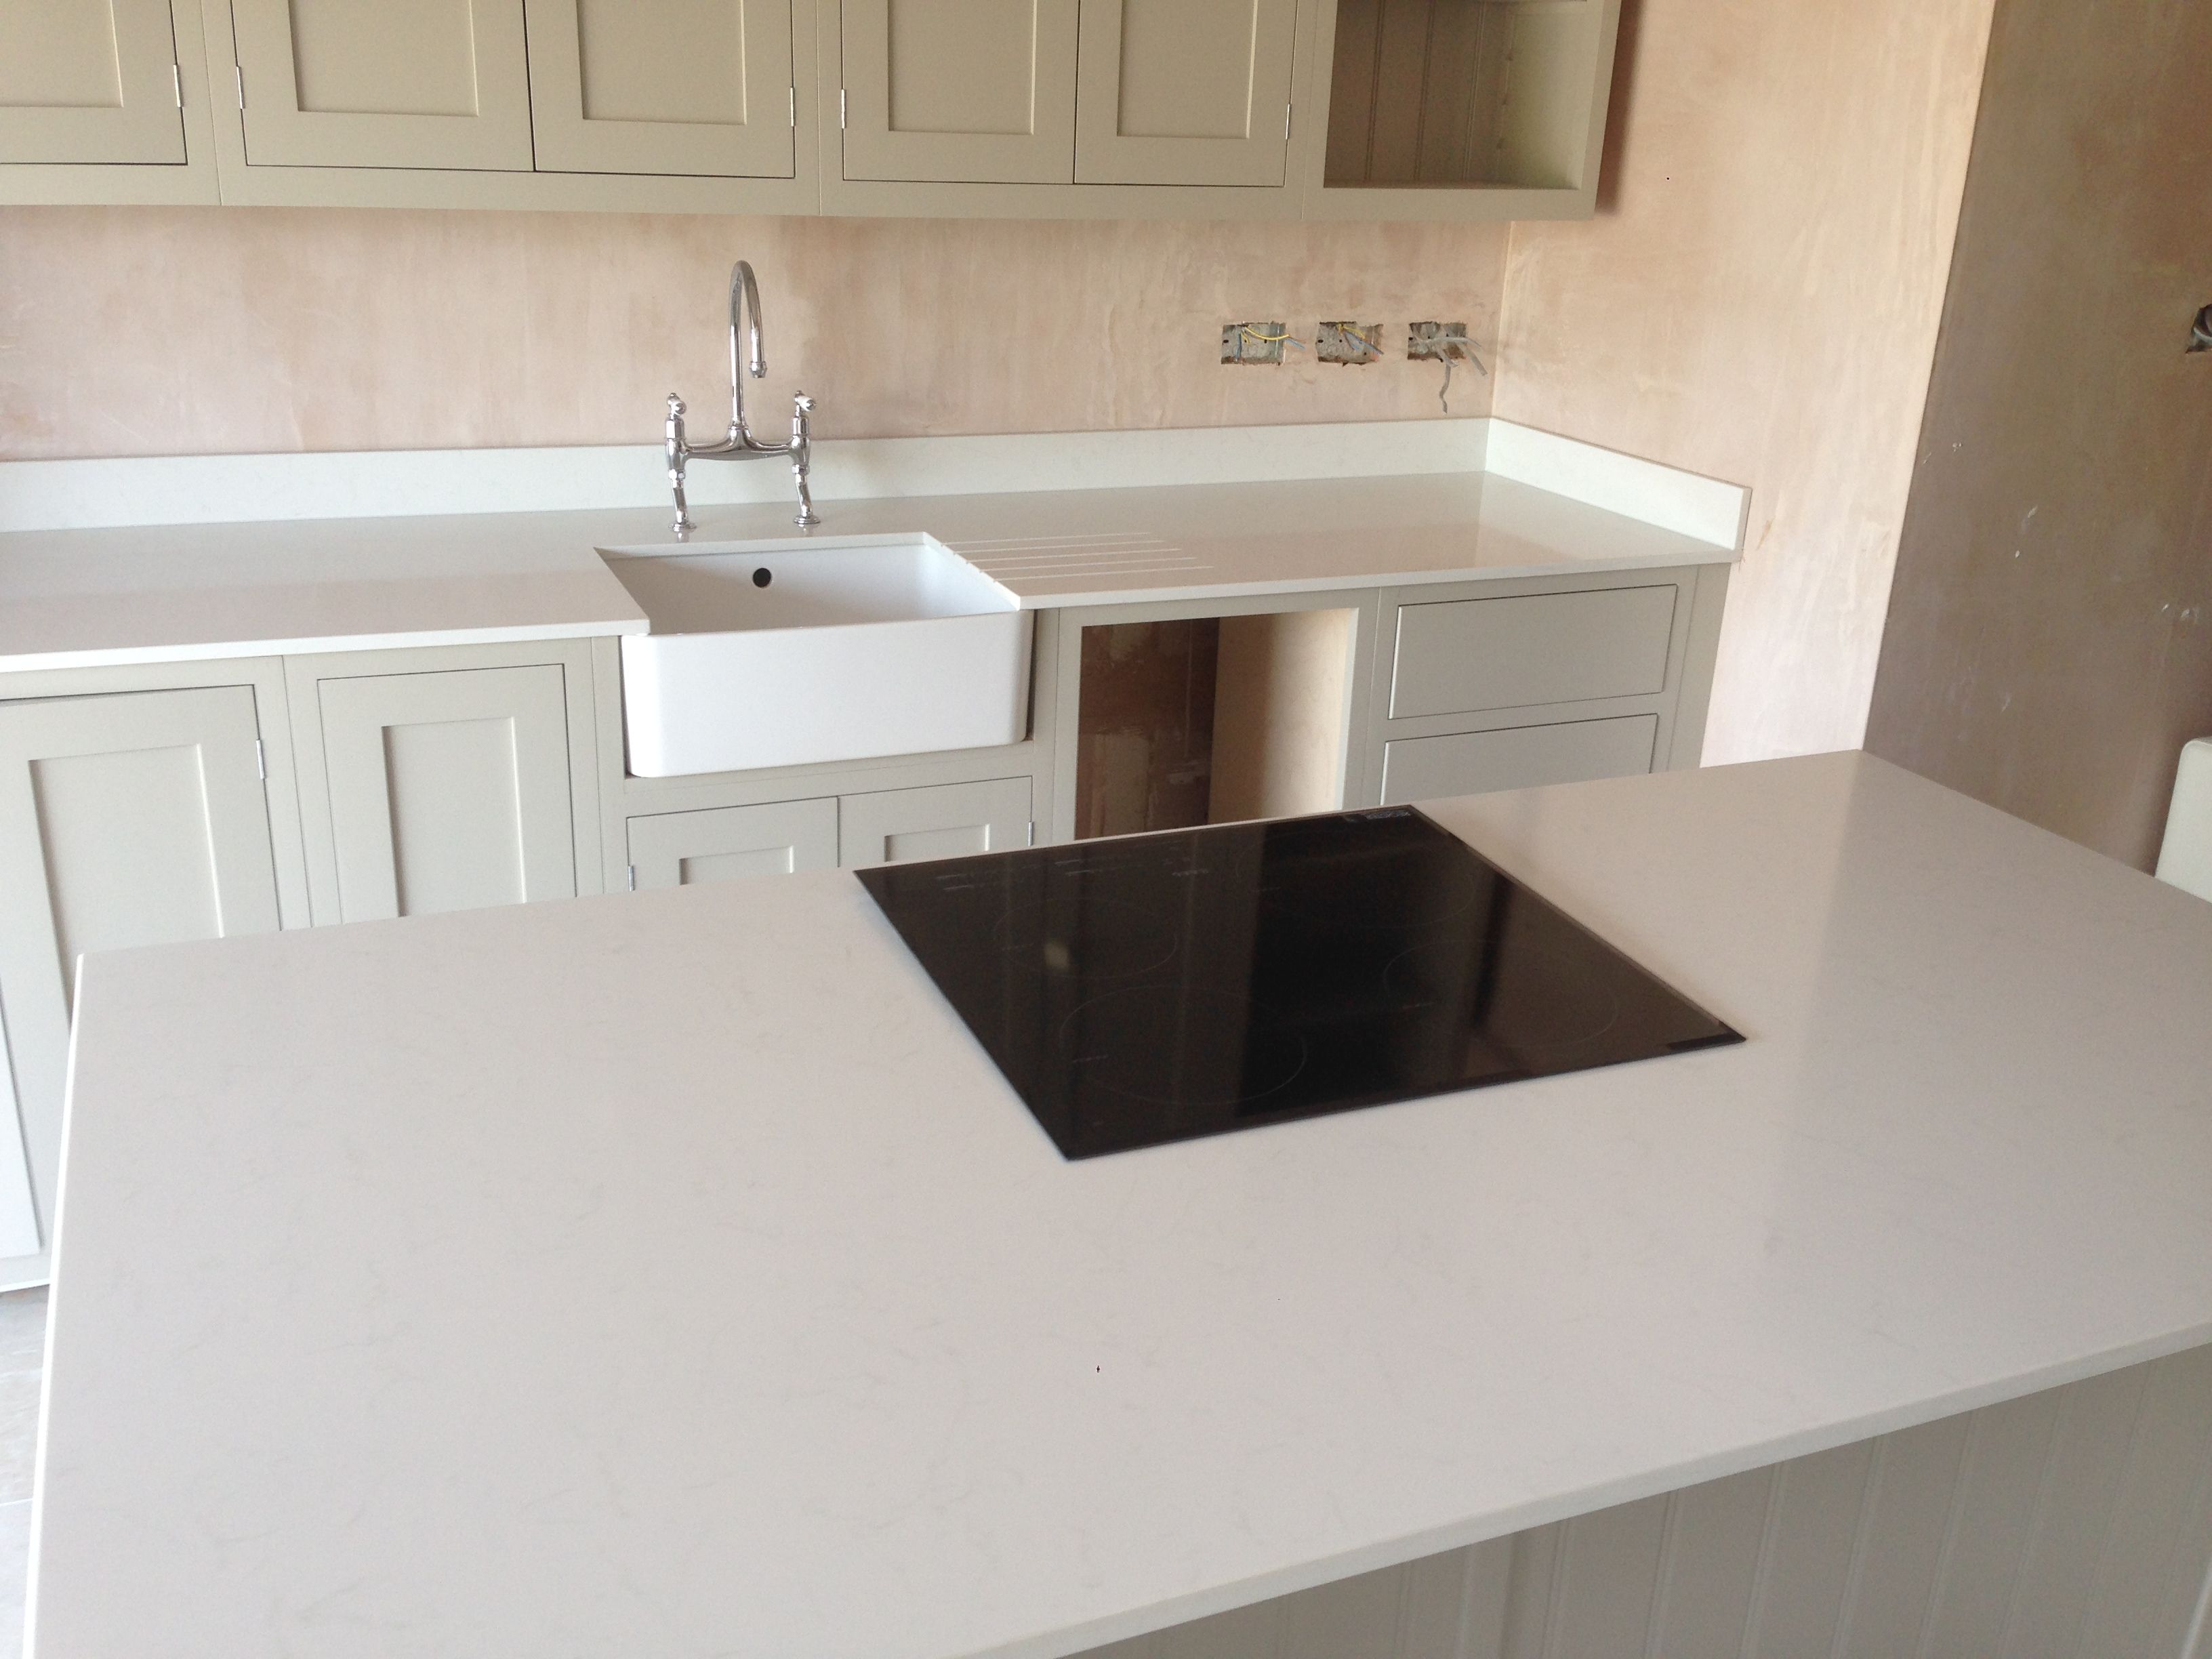 Unistone Carrara quartz on island unit and worktops in 20mm